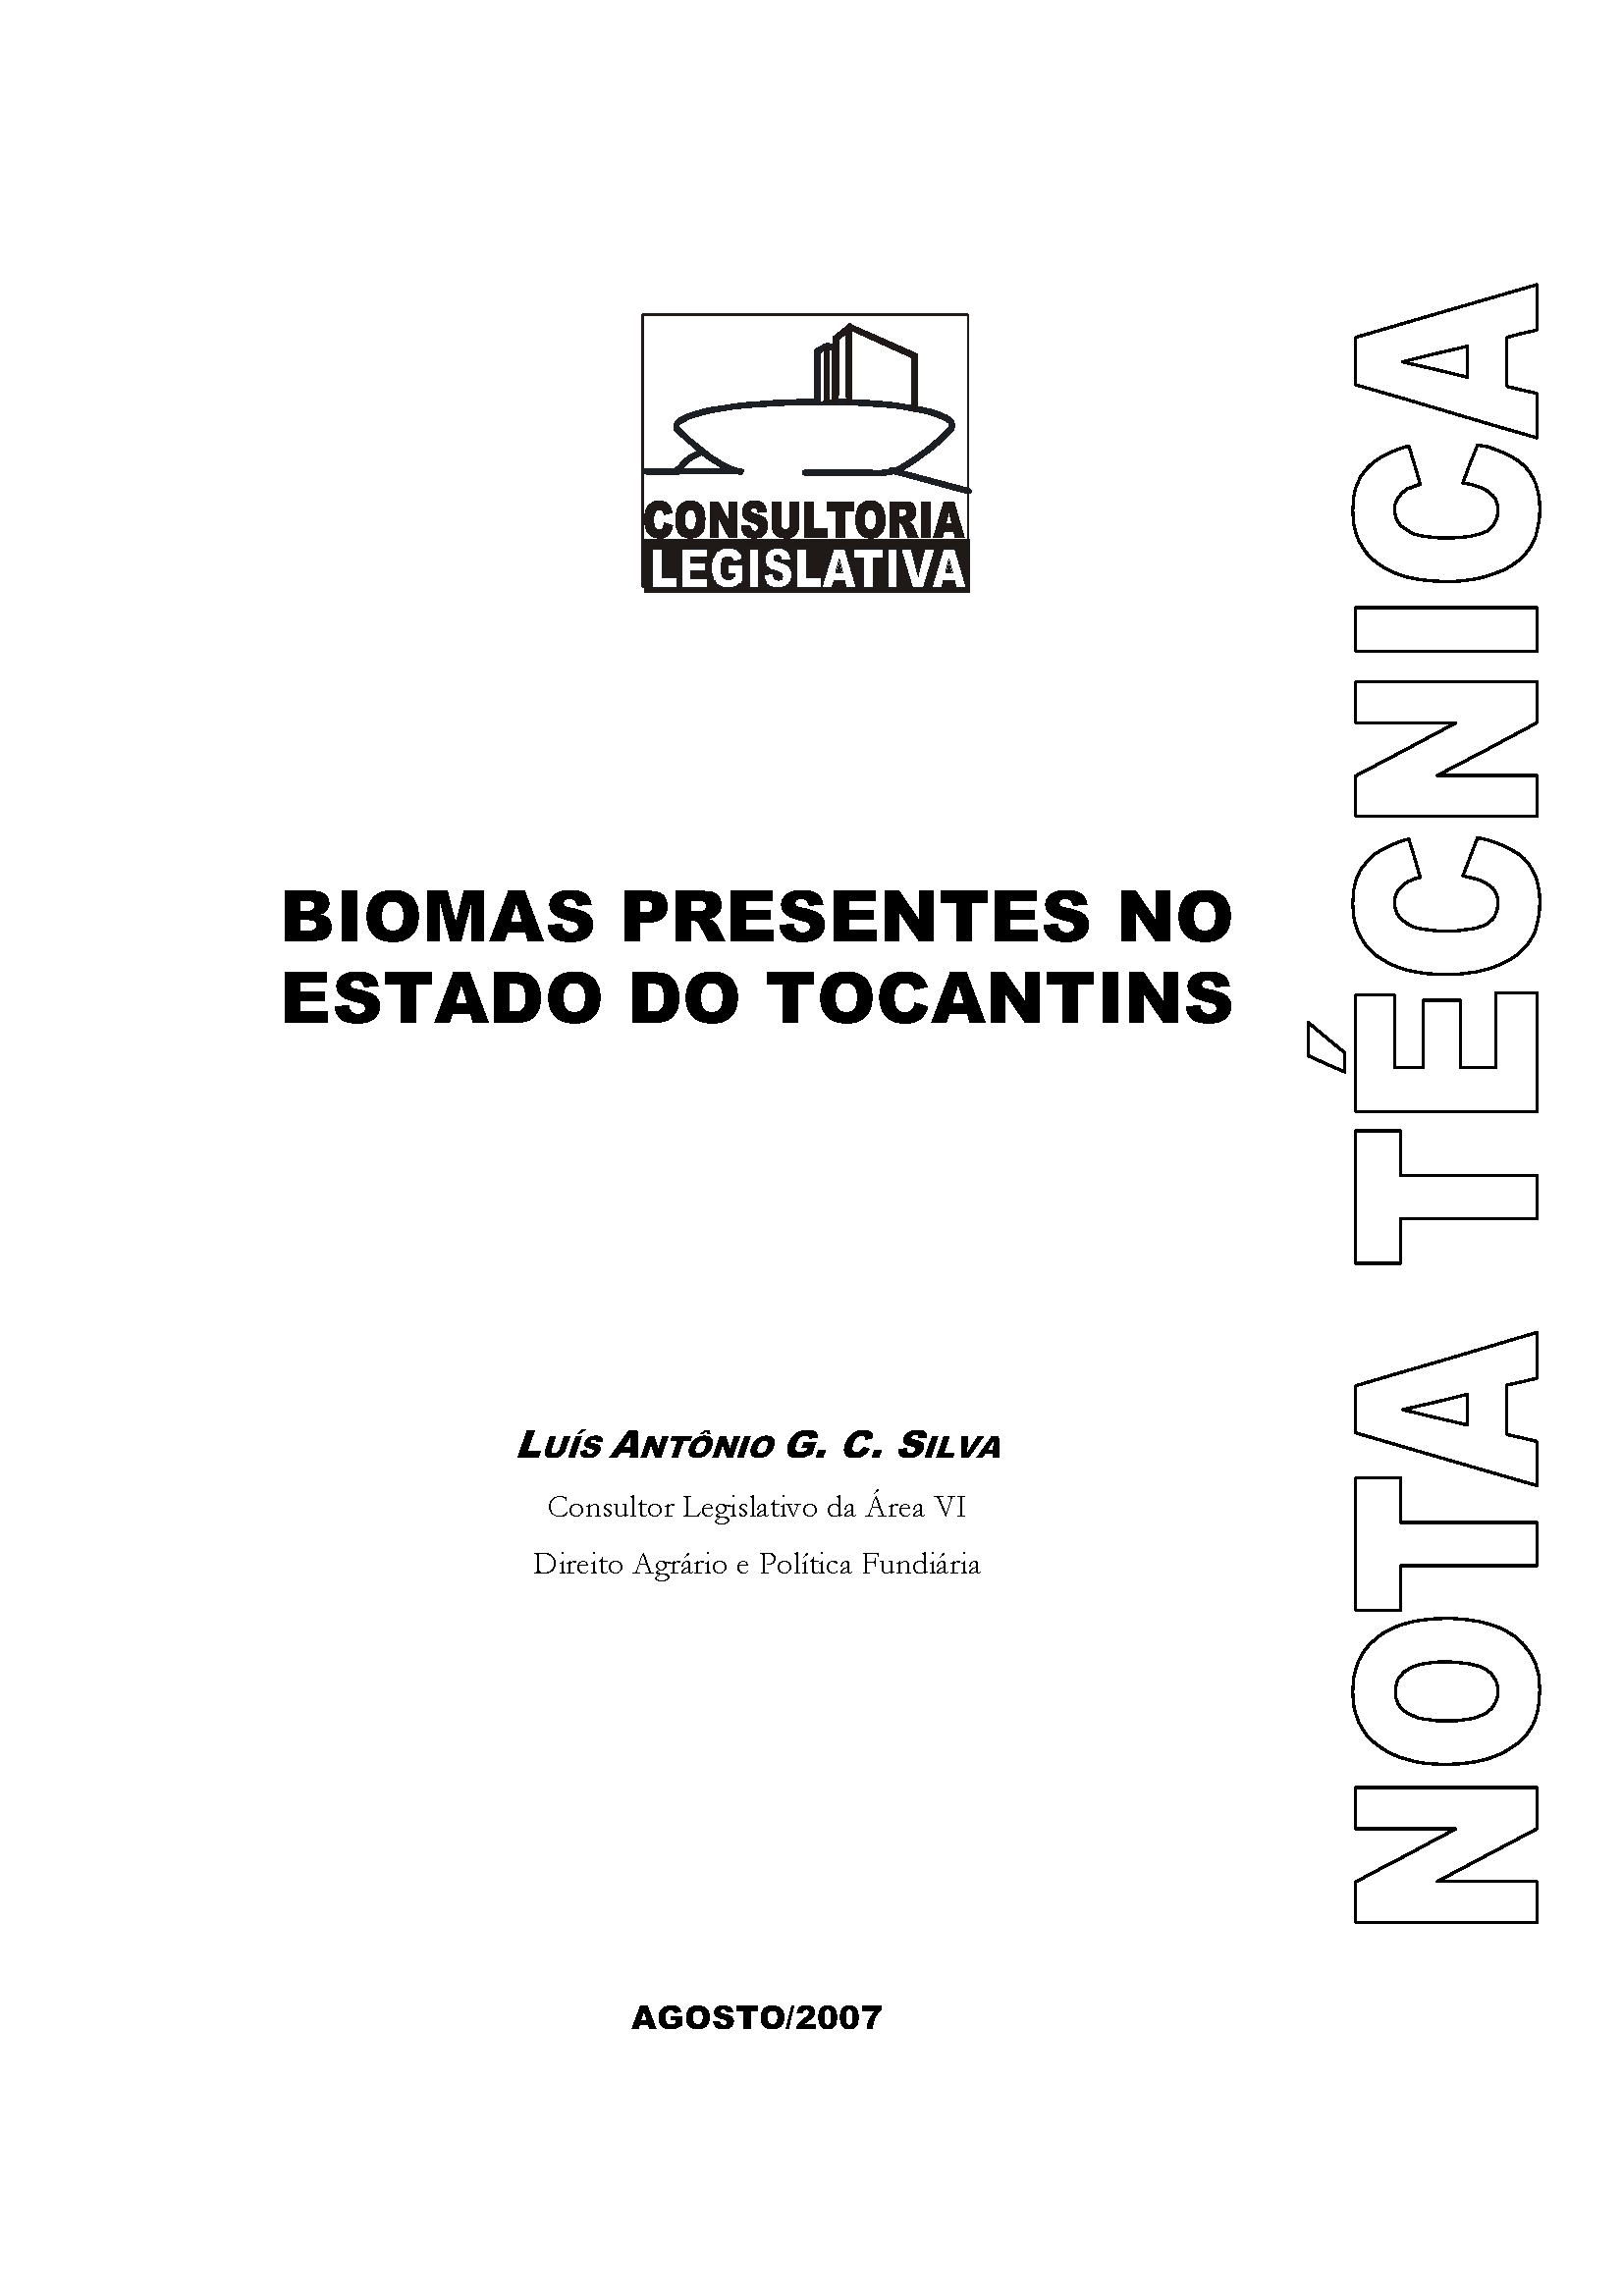 Capa da Biomas presentes no Estado do Tocantins